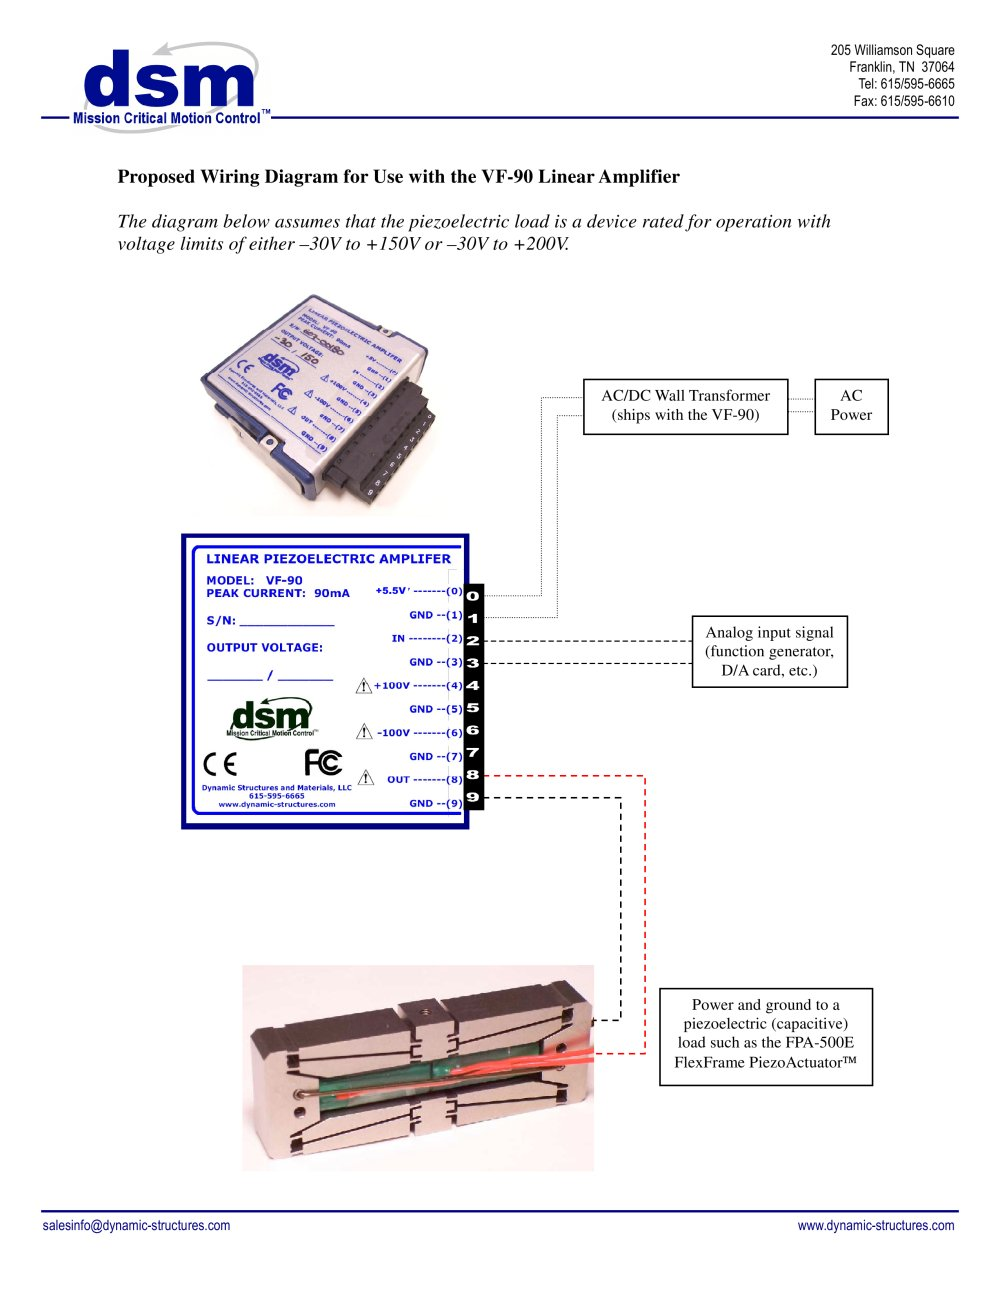 medium resolution of wiring diagram for use with the vf 90 piezo amplifier 1 1 pages